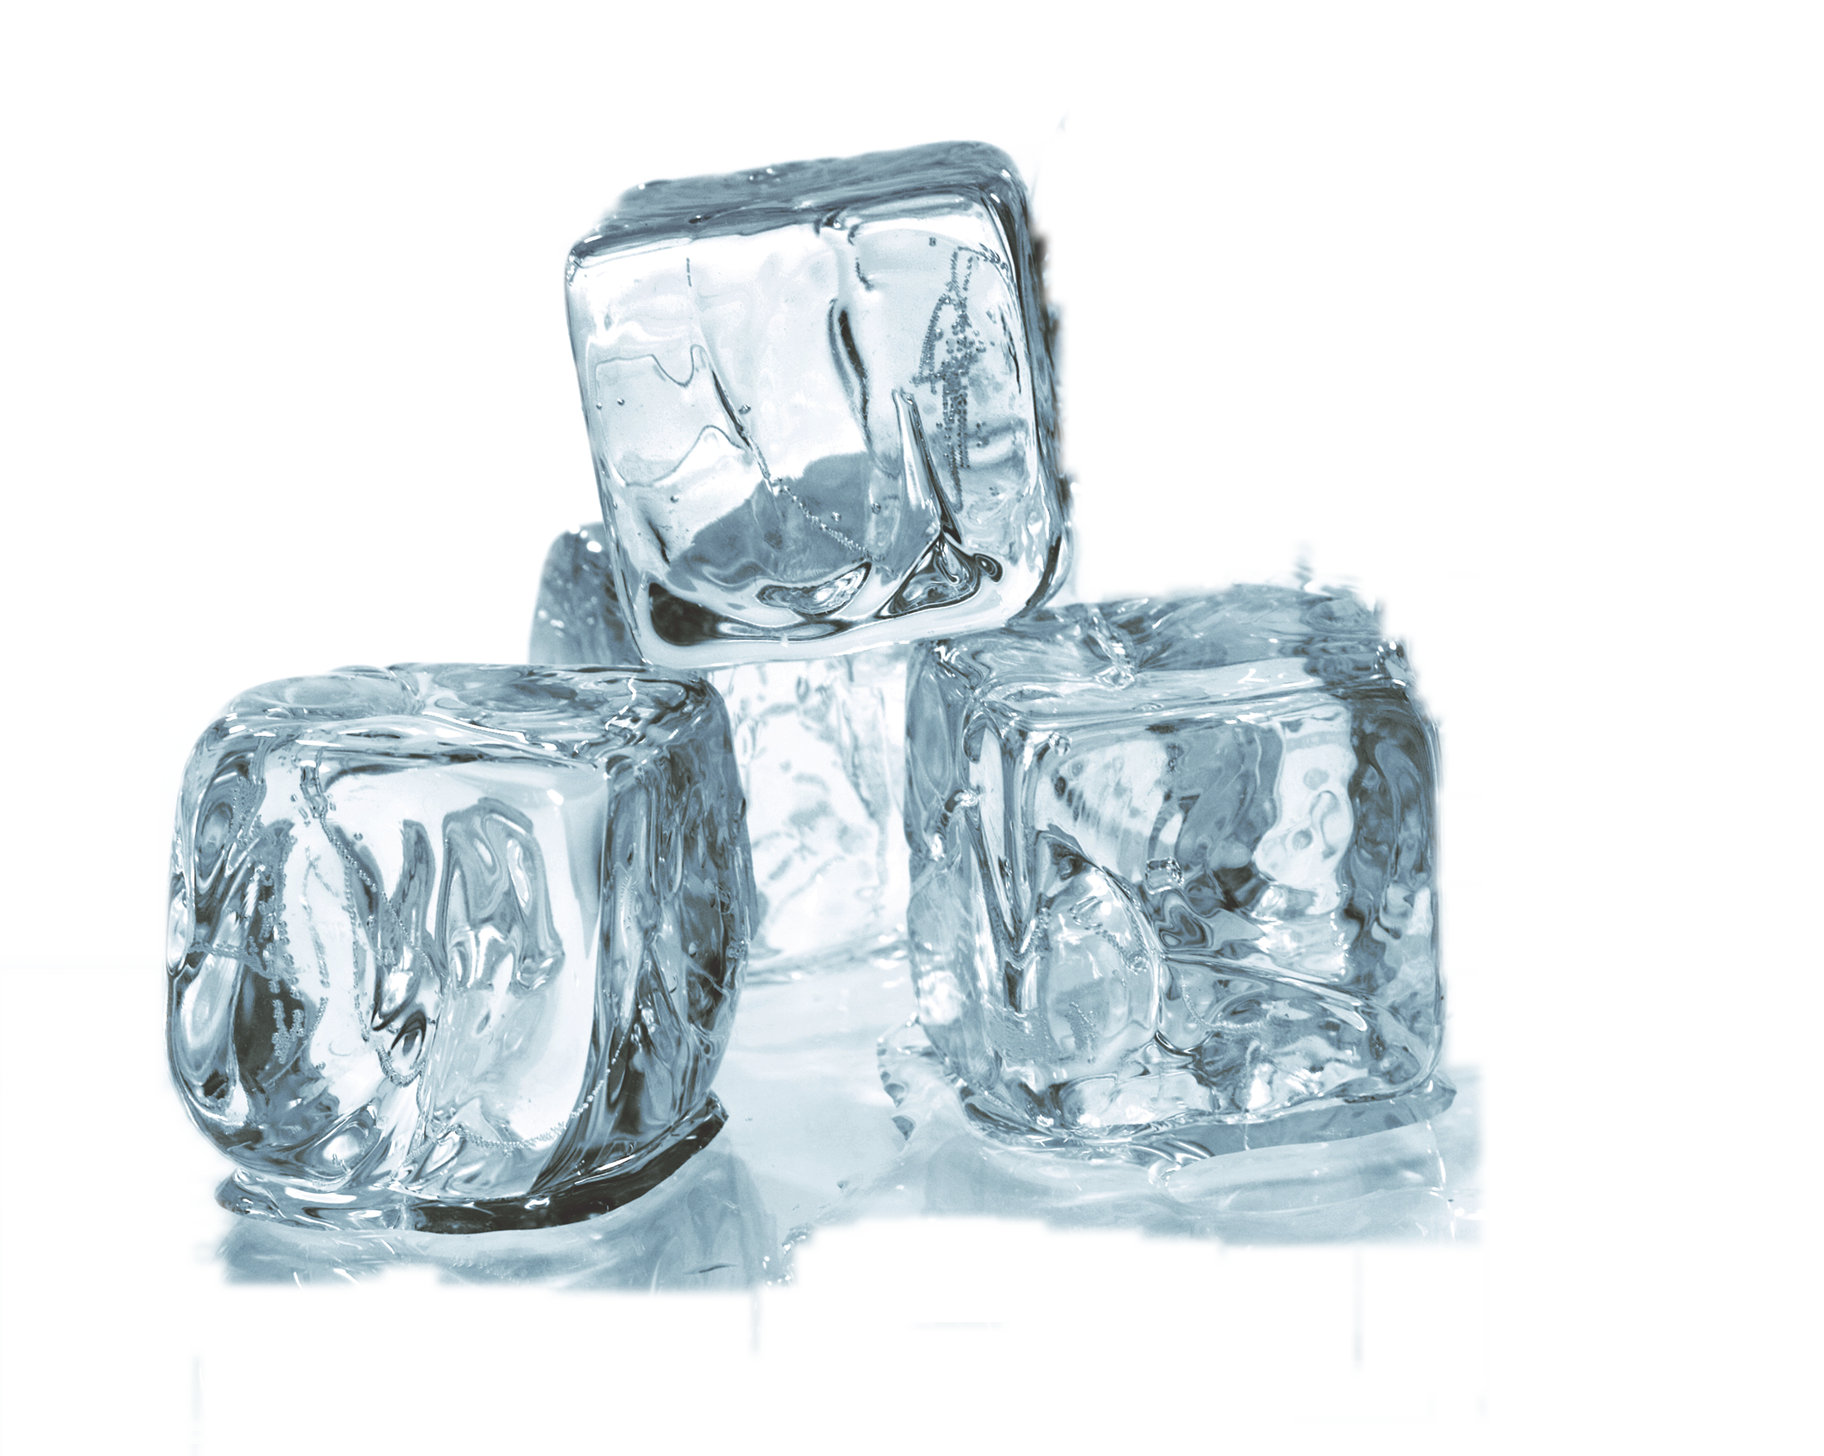 ice png transparent ice png images pluspng ice cube clip art ice cube clip art spilled on floor